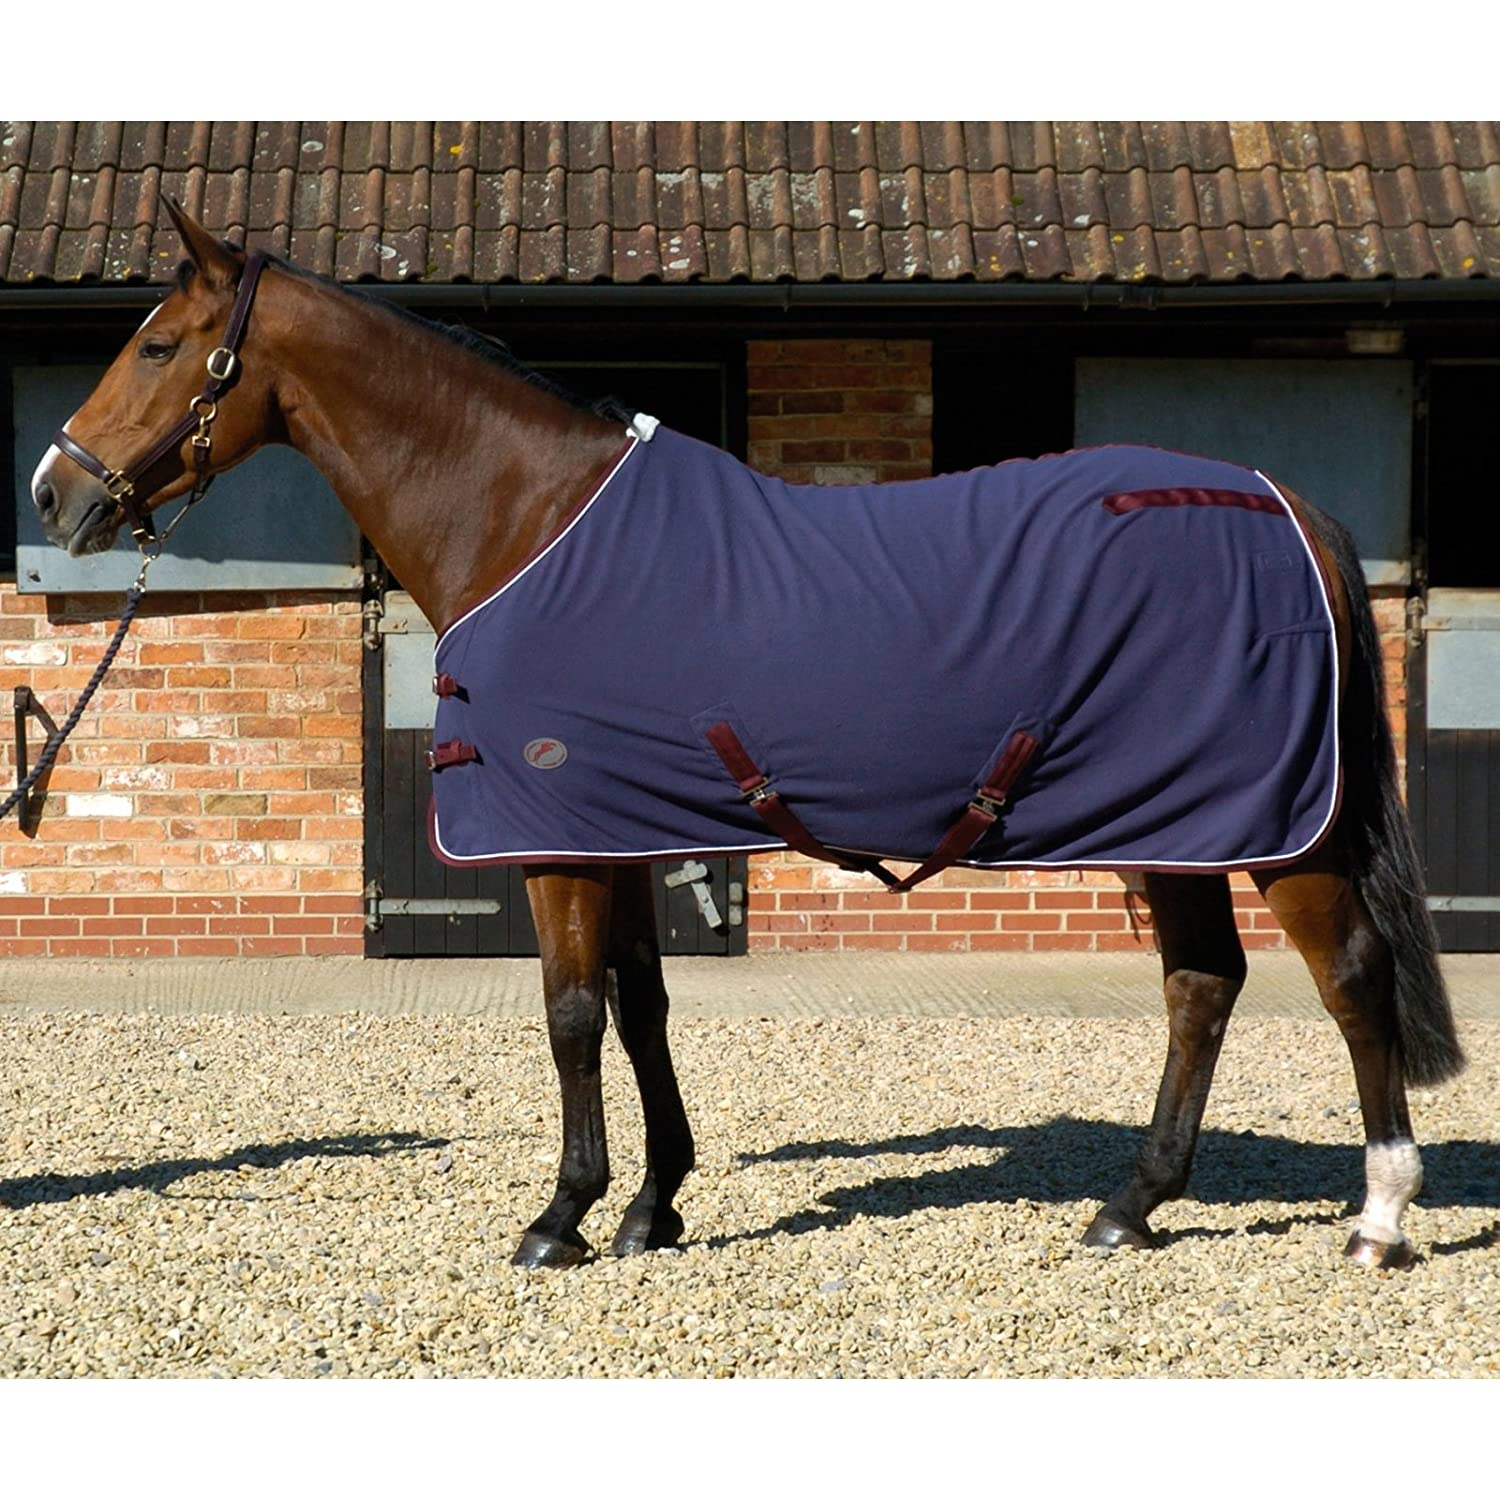 7'0\ Tigerbox® JHL Fleece Horse Rug Navy Burgundy White (7' 0 ) and Antibacterial Pen